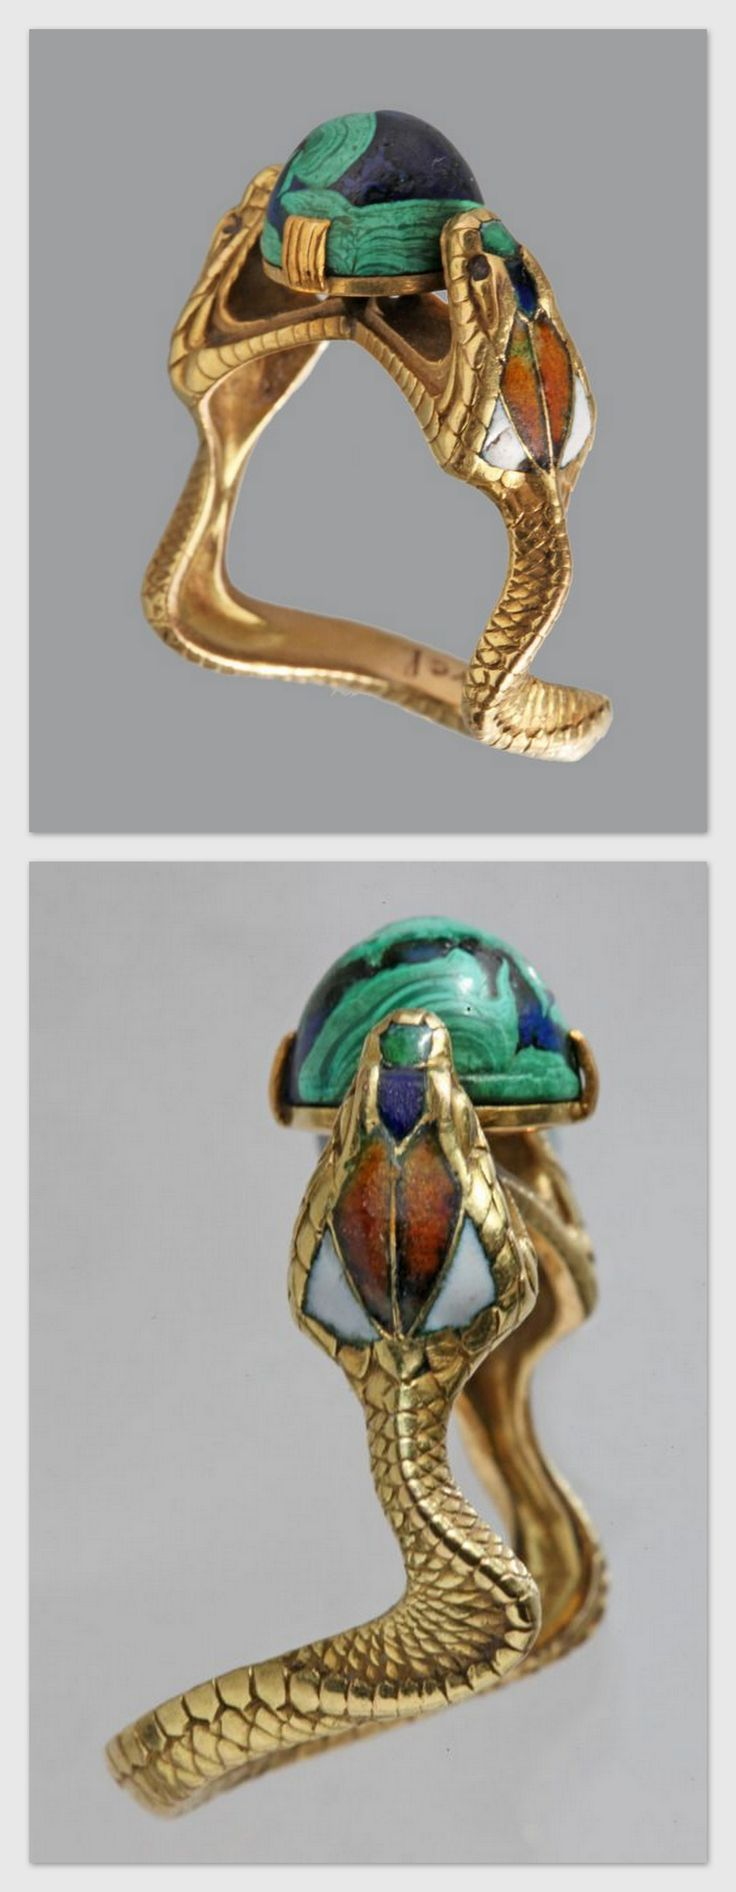 CHARLES BOUTET DE MONVEL 1855-1913. The Hooded Cobras clutching a blue green cabochon 'world', gold, enamel, lapis and malachite. Marks: Signed 'B. de Monvel', French, c.1900.